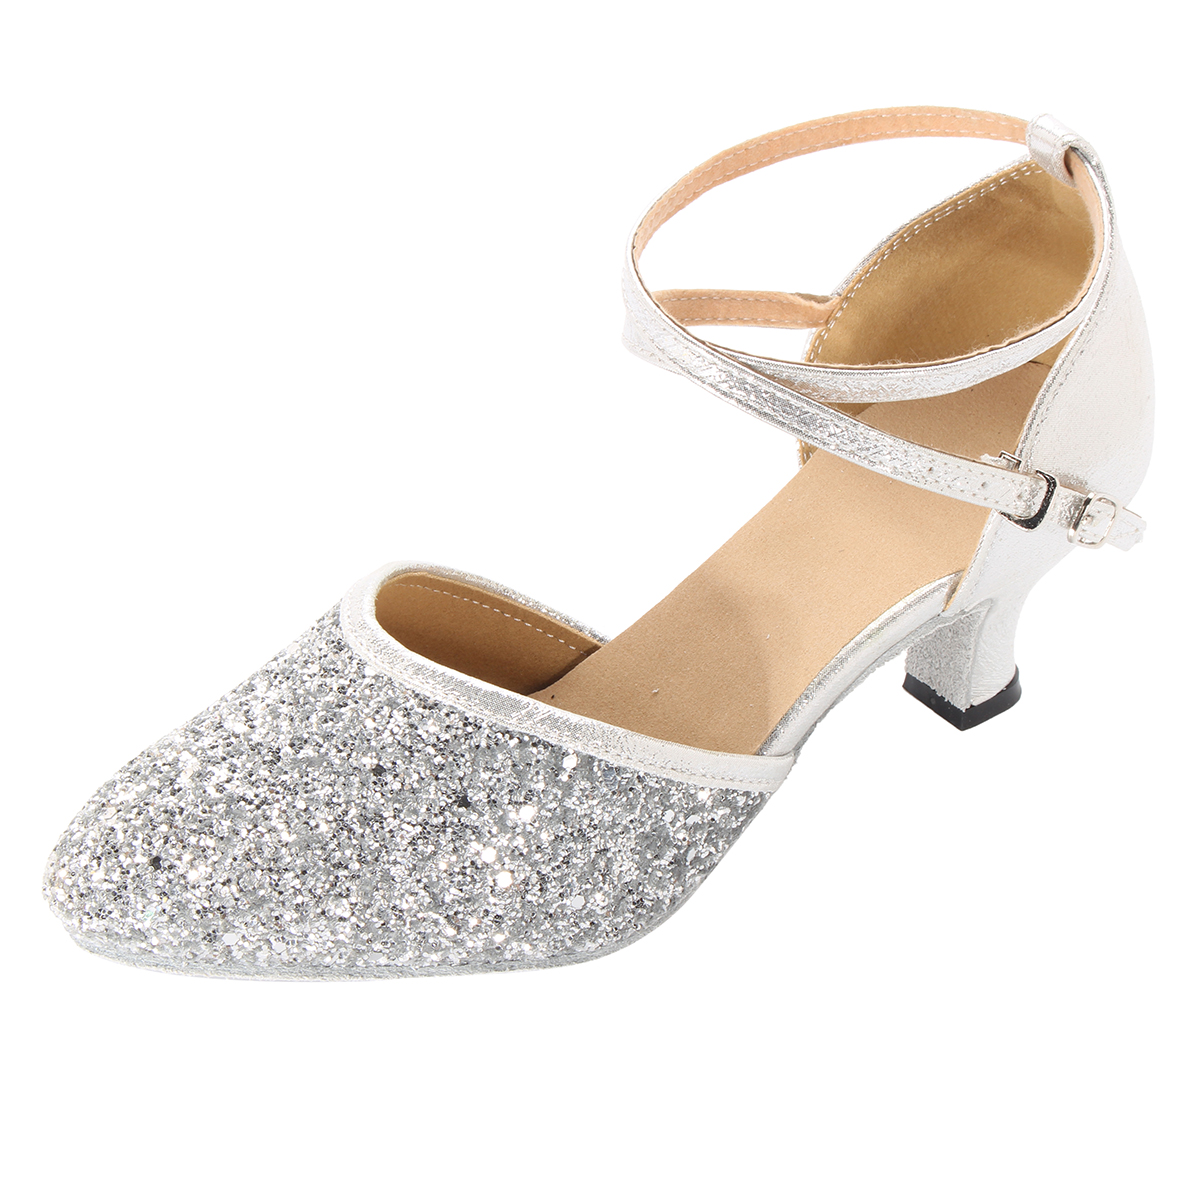 Ballroom Dancing Shoes Light In The Box